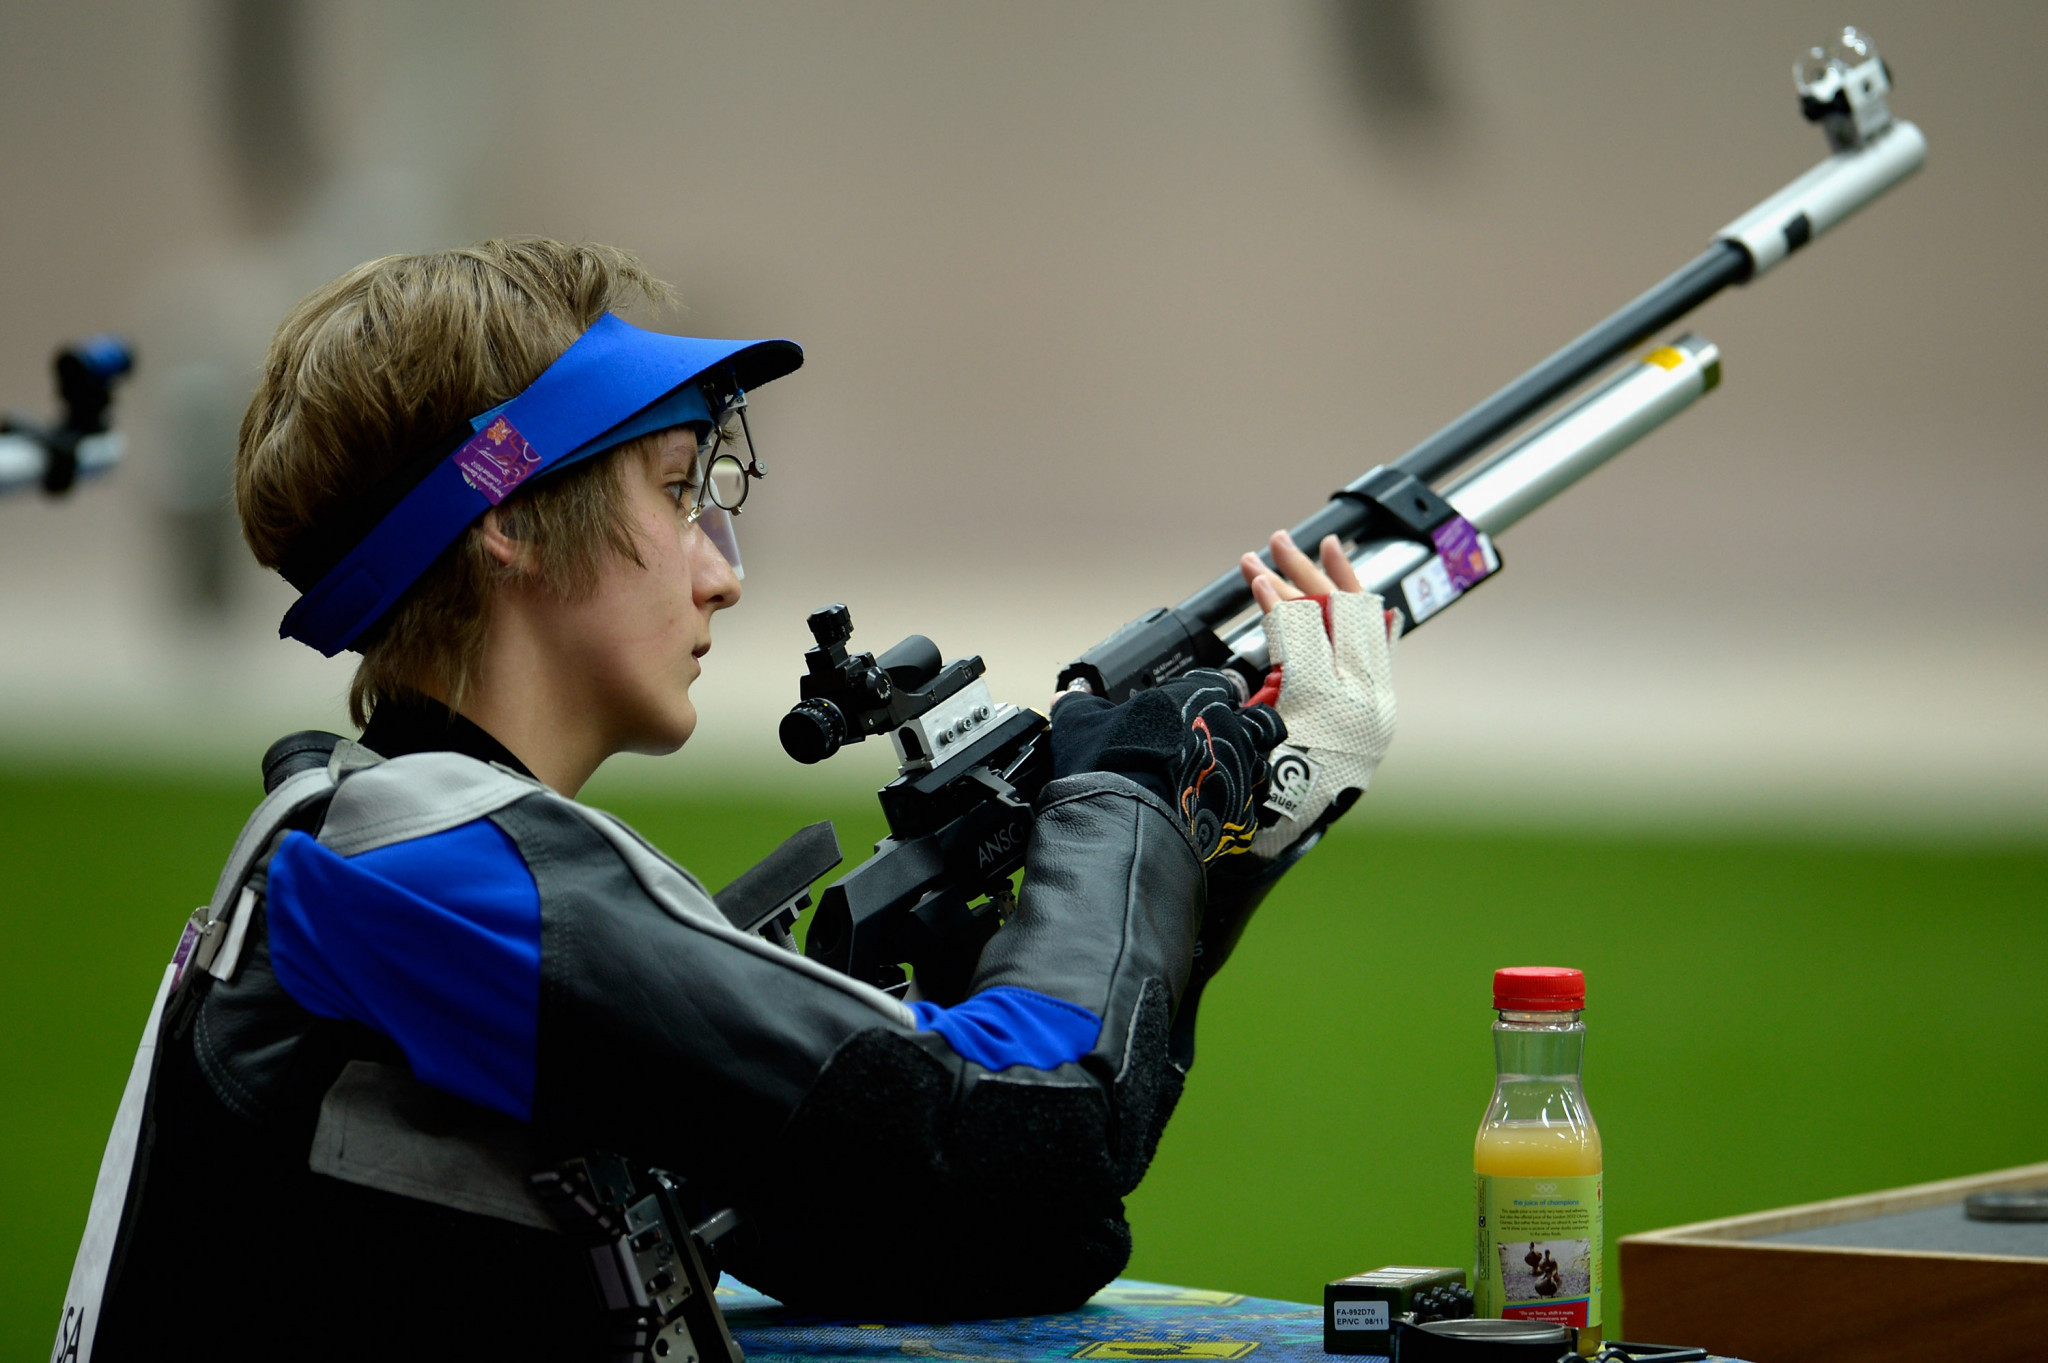 Rio 2016 Paralympic Games silver medallist Natascha Hiltrop will head the German team at the International Shooting Competition ©Getty Images